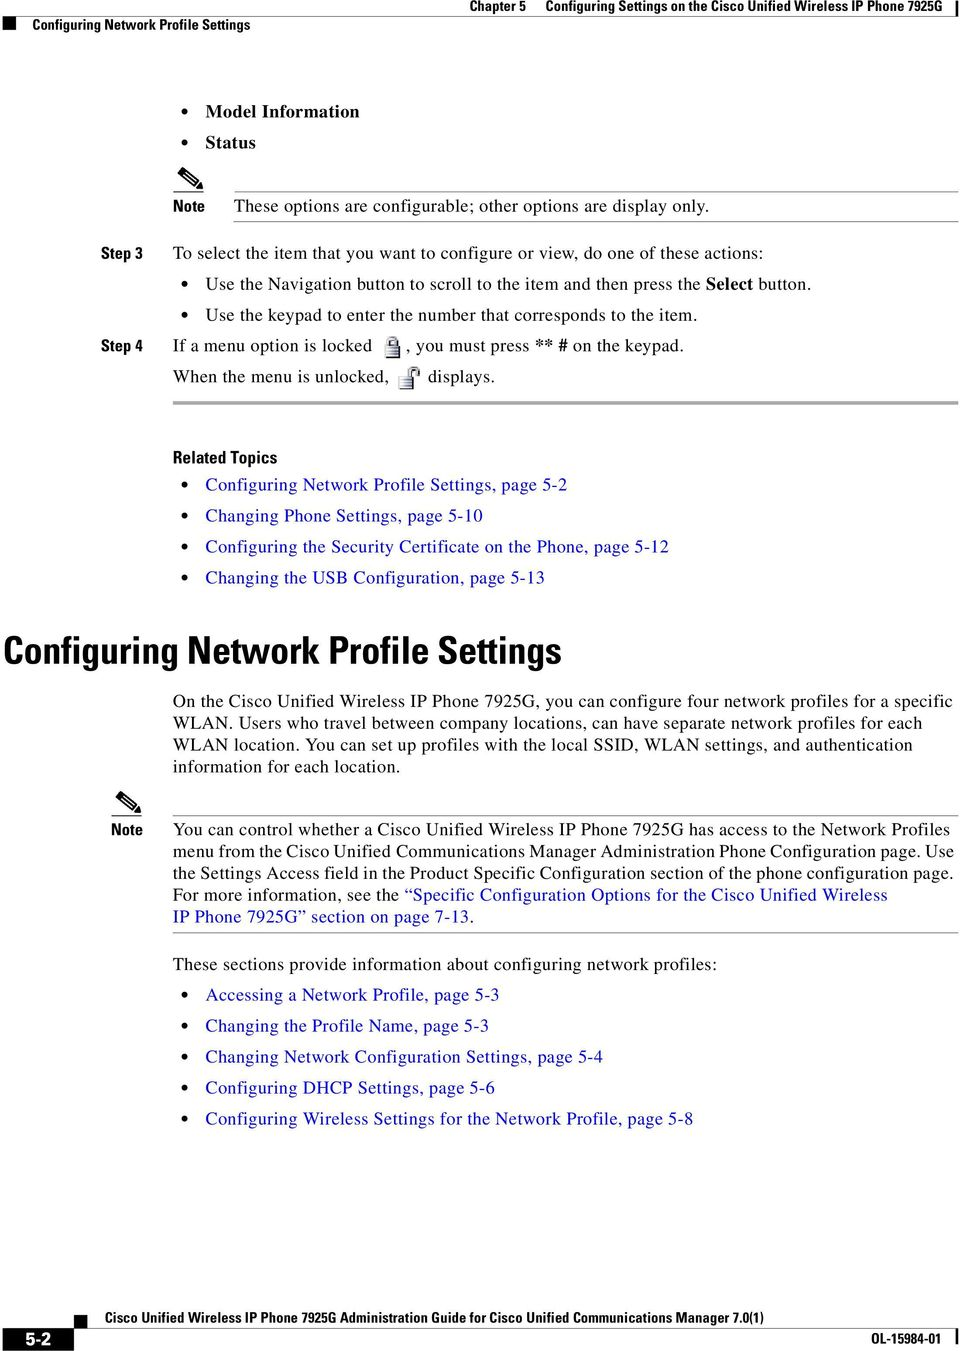 Configuring Settings on the Cisco Unified Wireless IP Phone